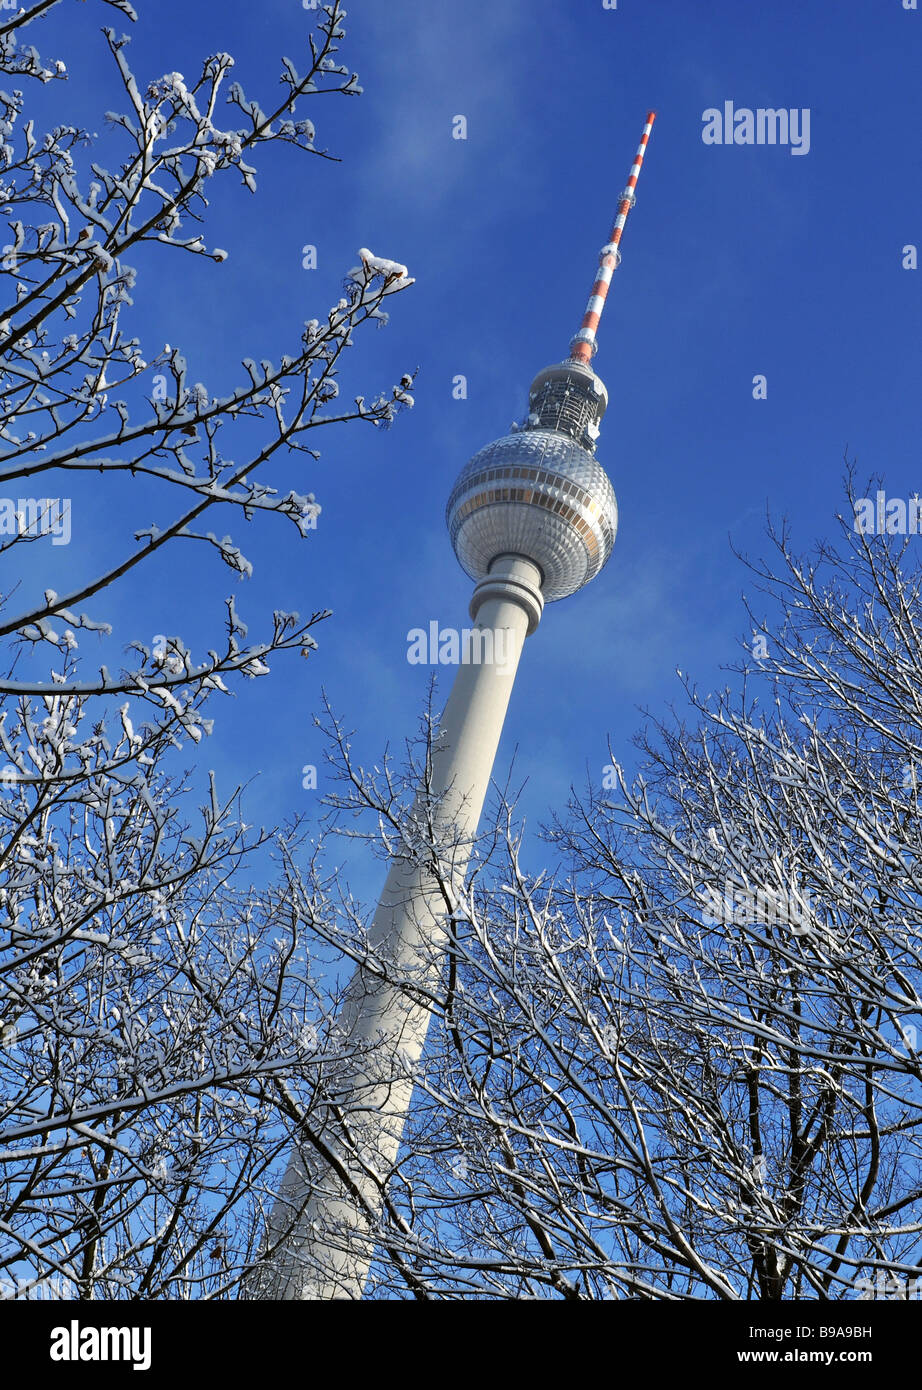 Berlin television tower winter germany - Stock Image